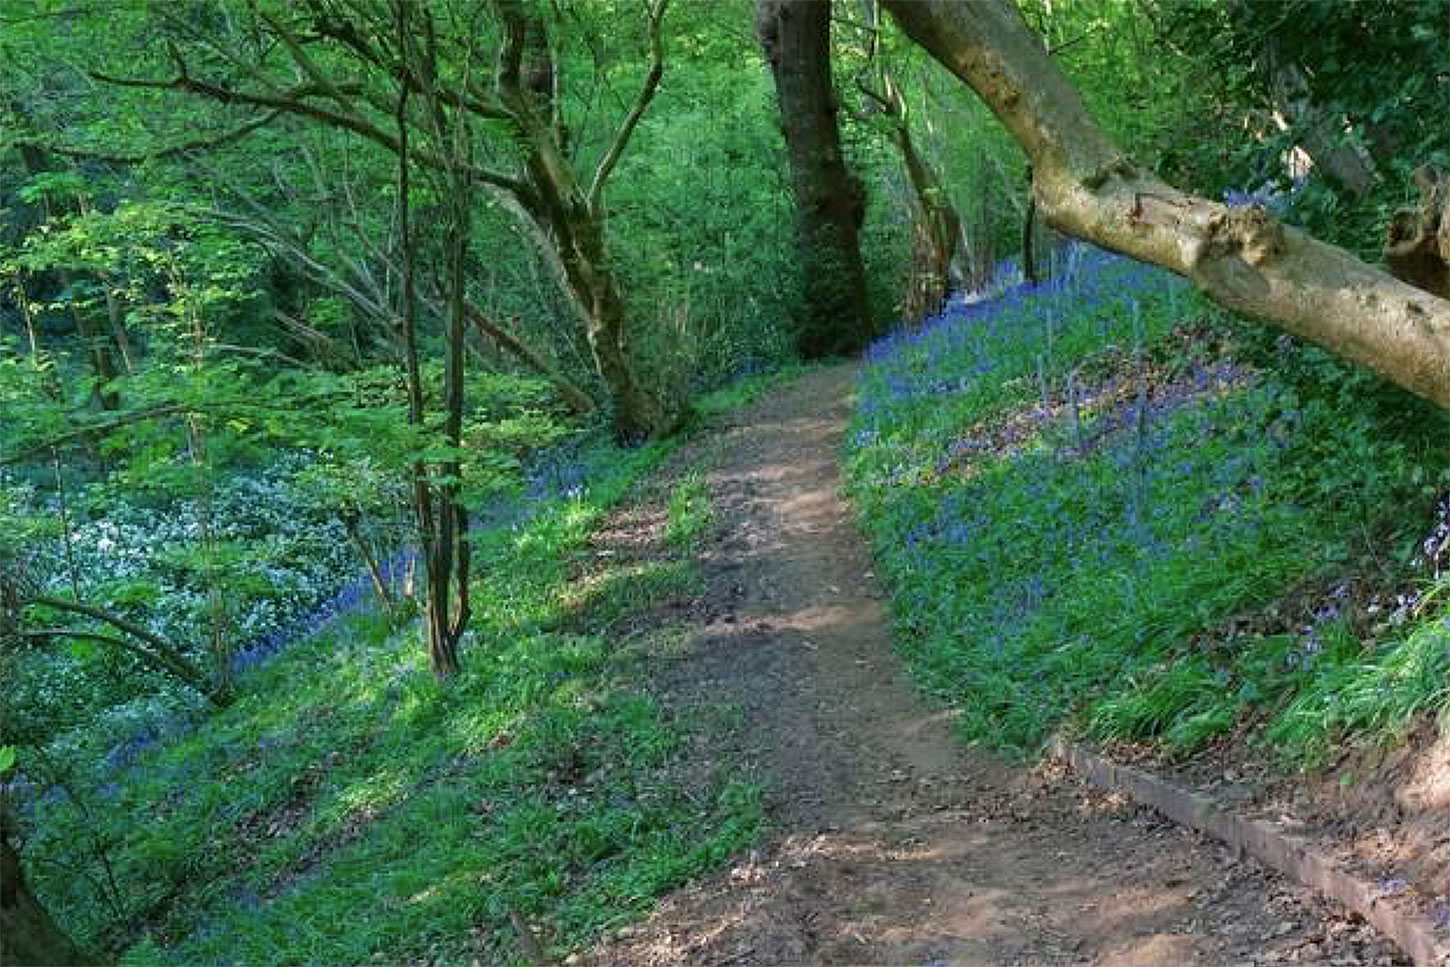 Bluebells in Hob Hey Wood